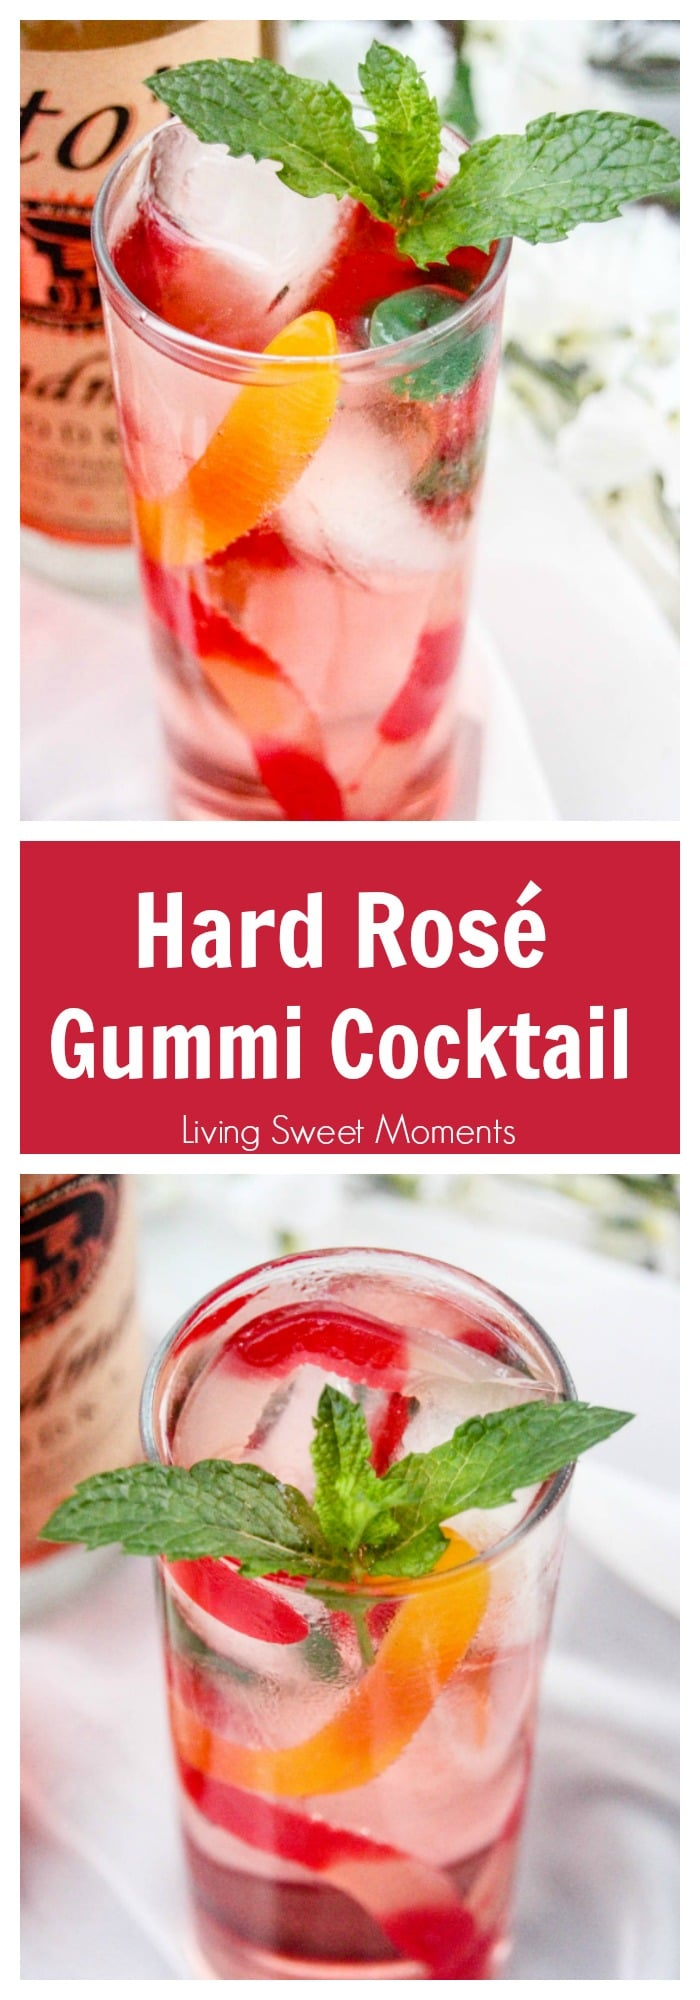 Hard Rosé Gummi Cocktail - this delicious adult drink will make you feel like a kid by using actual gummy worms as an ingredient. Perfect cocktail for all!